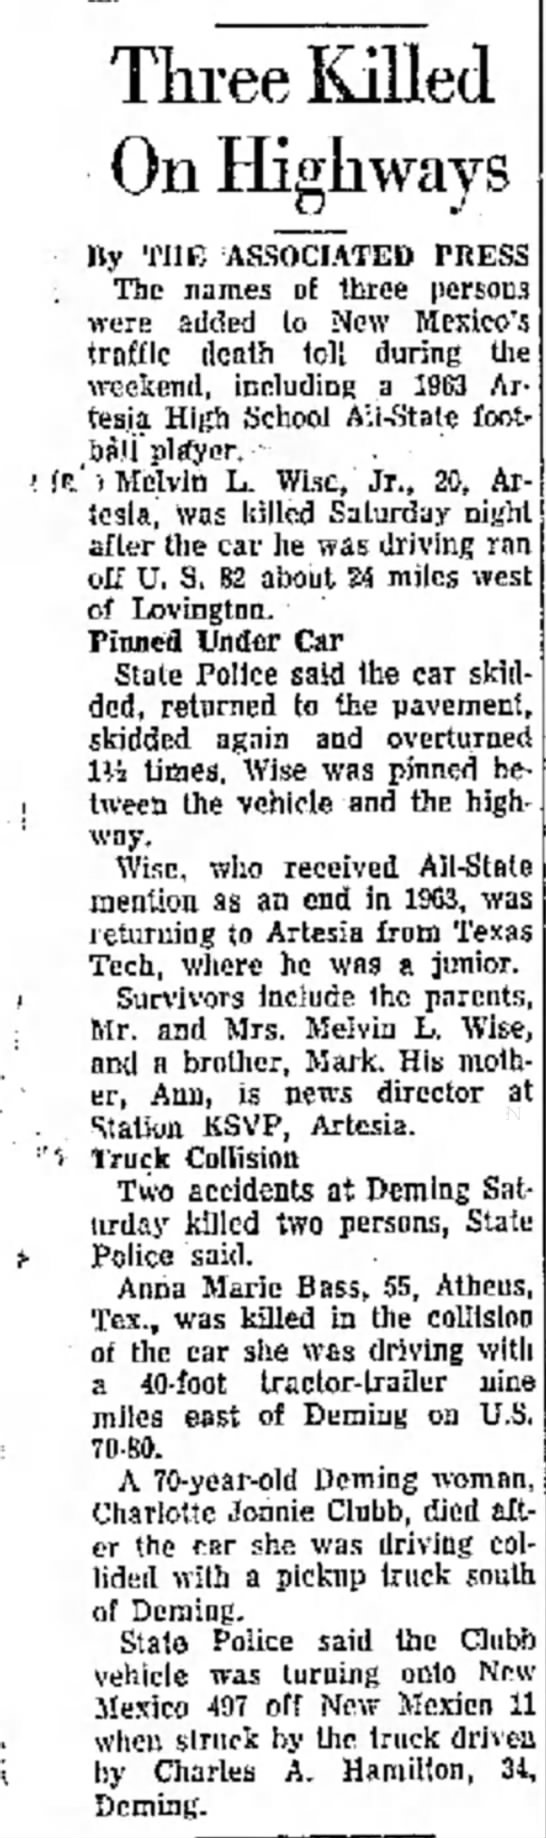 Melvin L Wise Jr. Death (20) 1967 - Three Killed On Highways By THE ASSOCIATED...